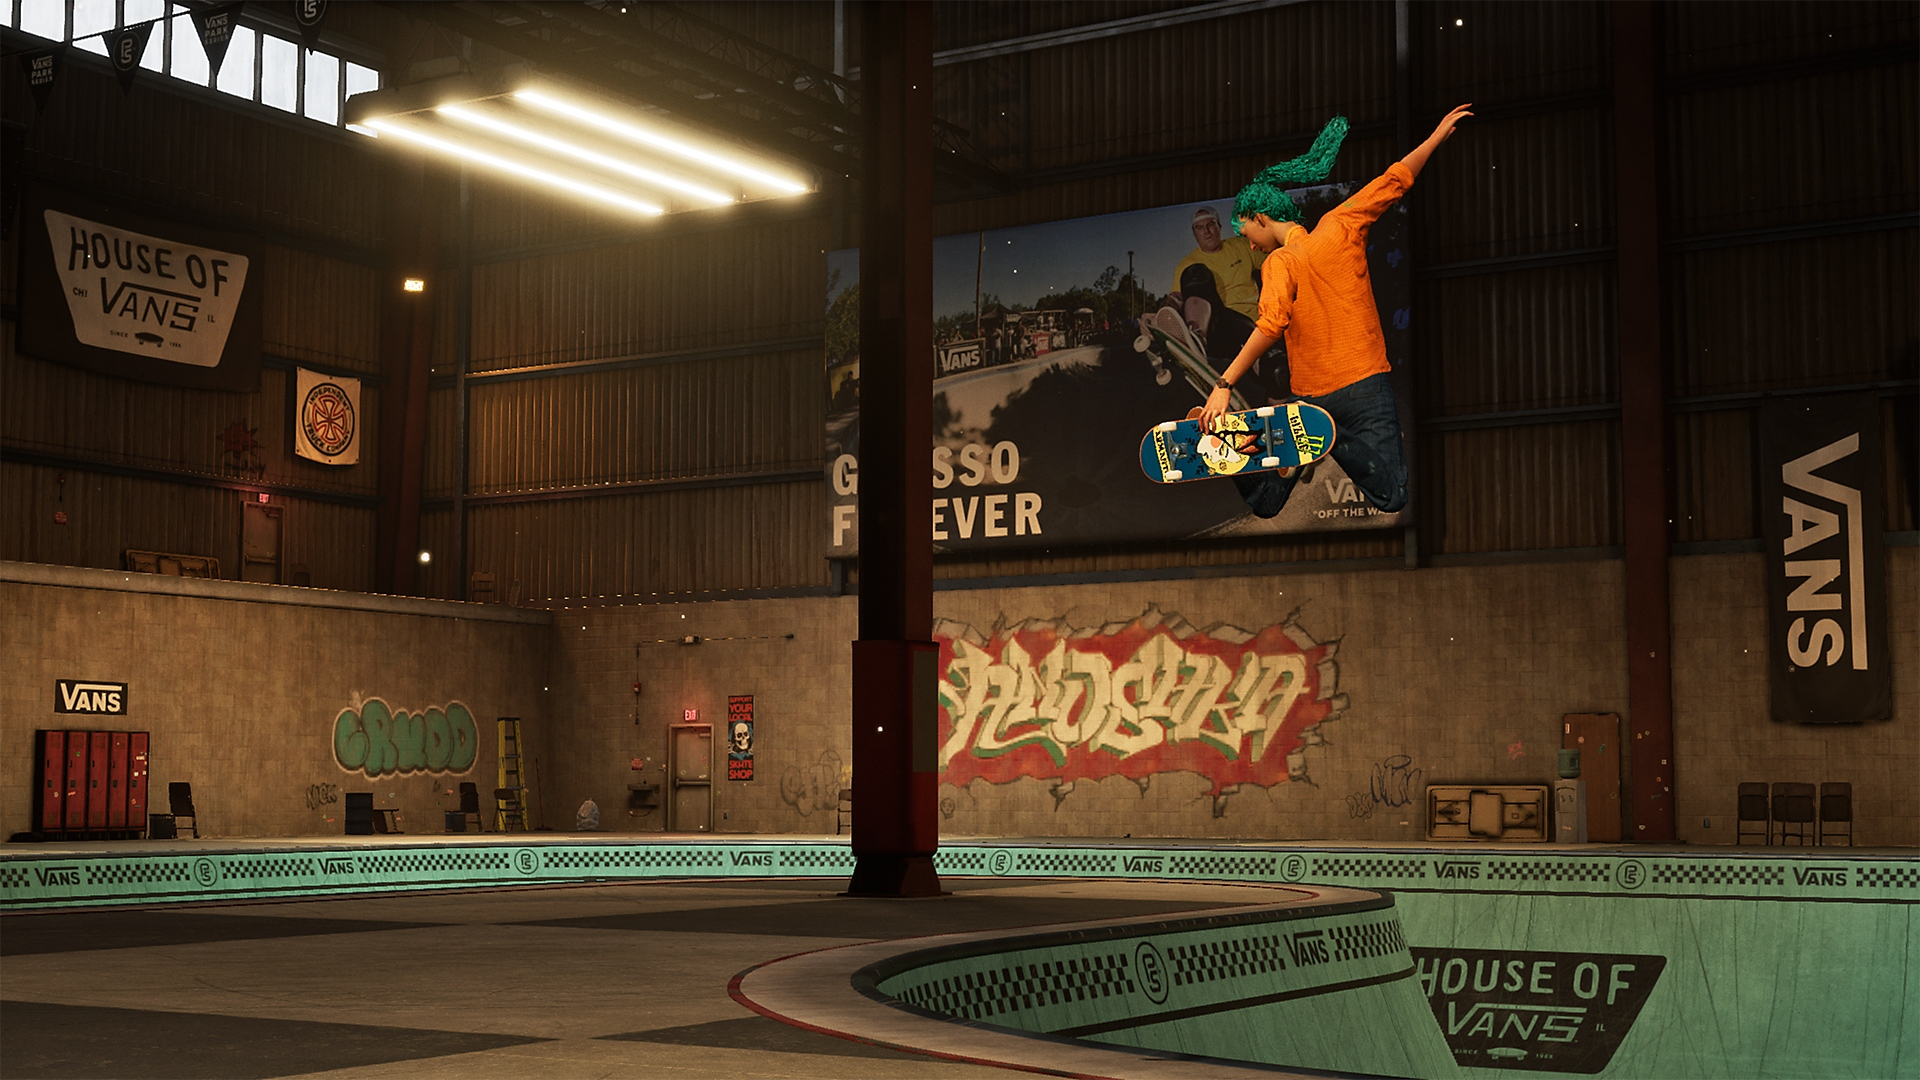 Tony Hawk's Pro Skater 1 + 2 - Gallery Screenshot 13